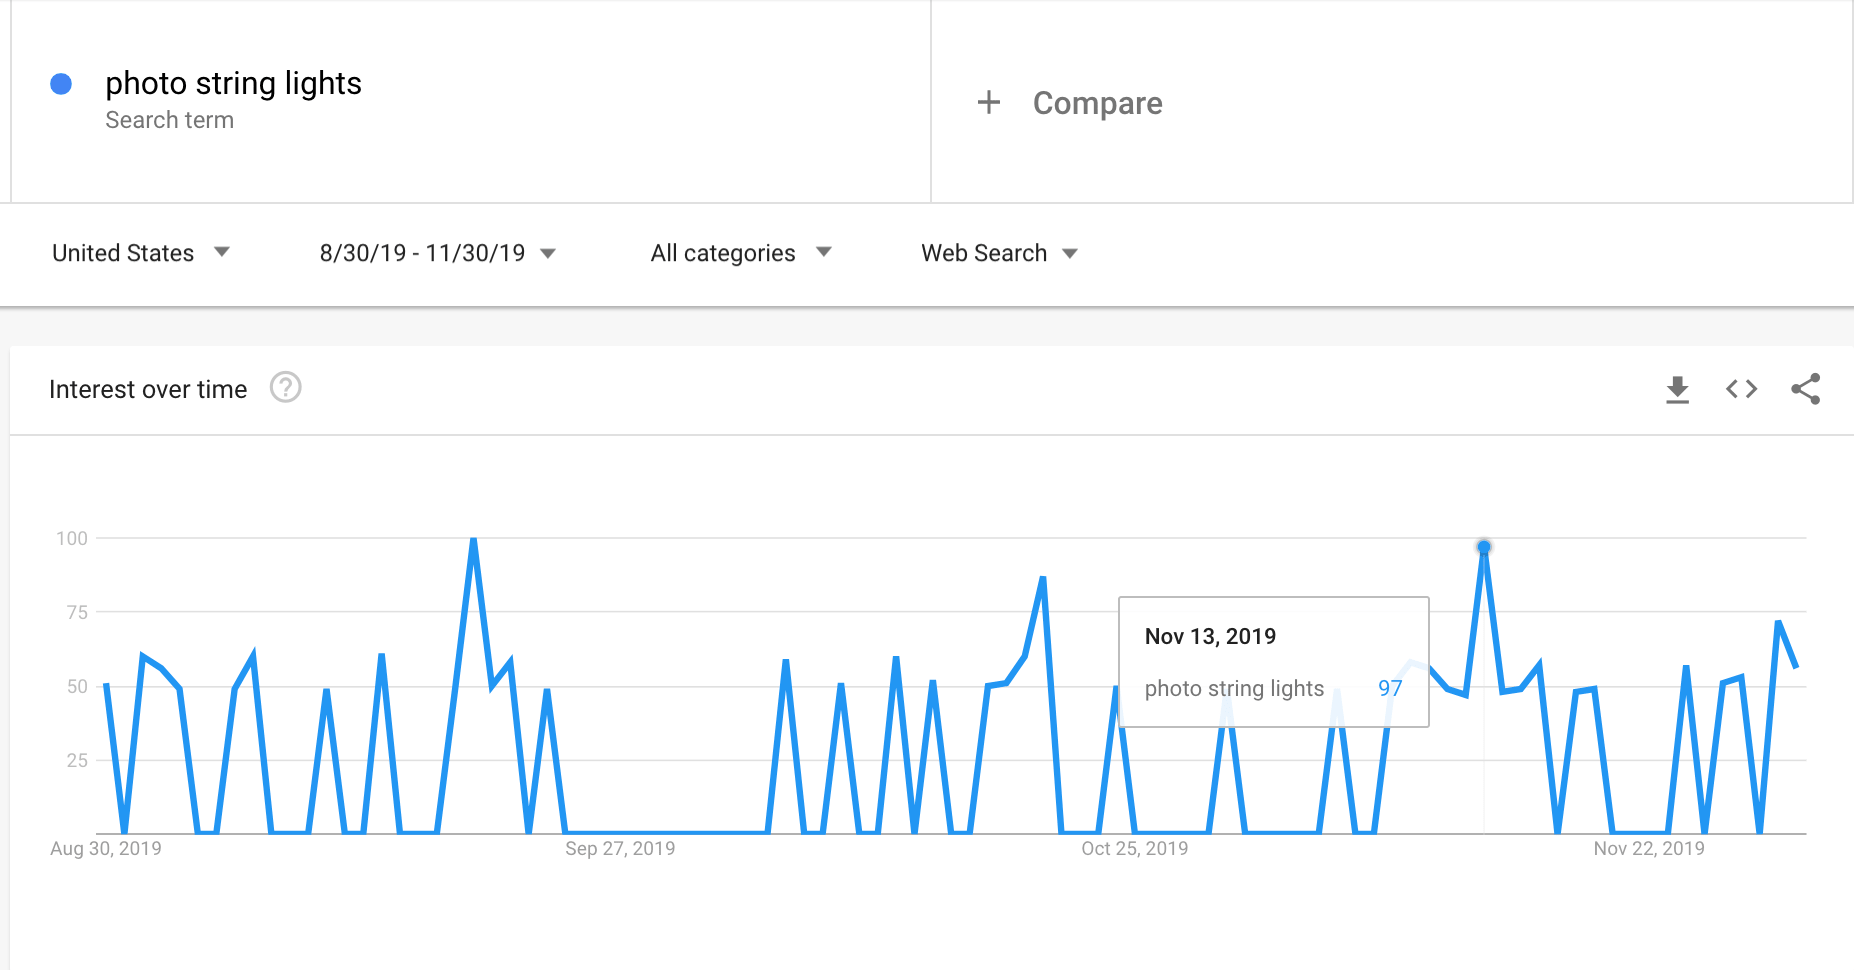 Google Trends graph showing the interest in photo clip string lights